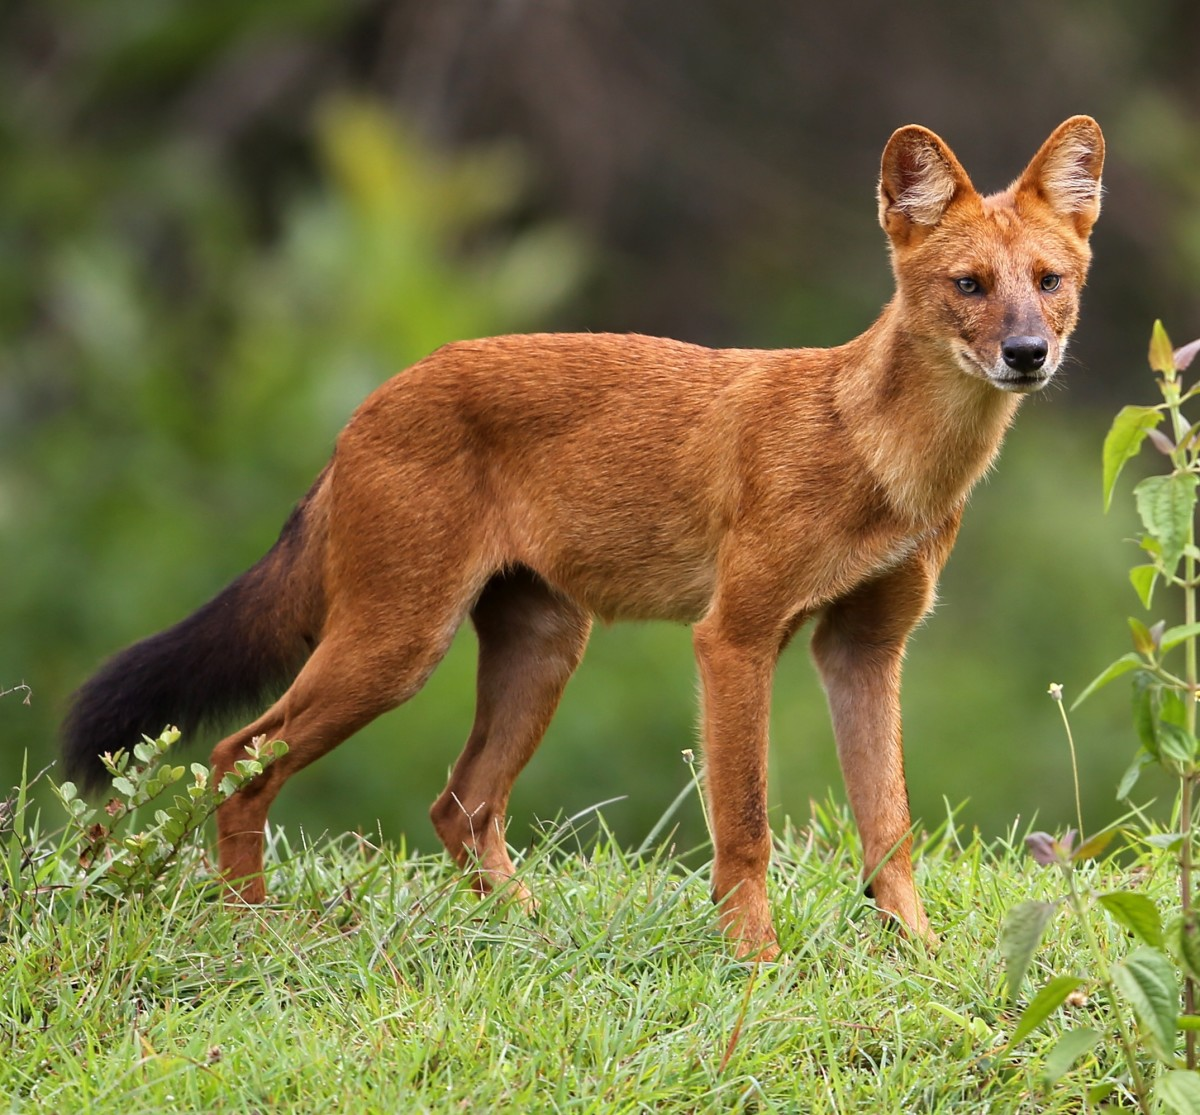 The dire wolf may have borne some resemblance to a dhole, though it was significantly bigger and bulkier.